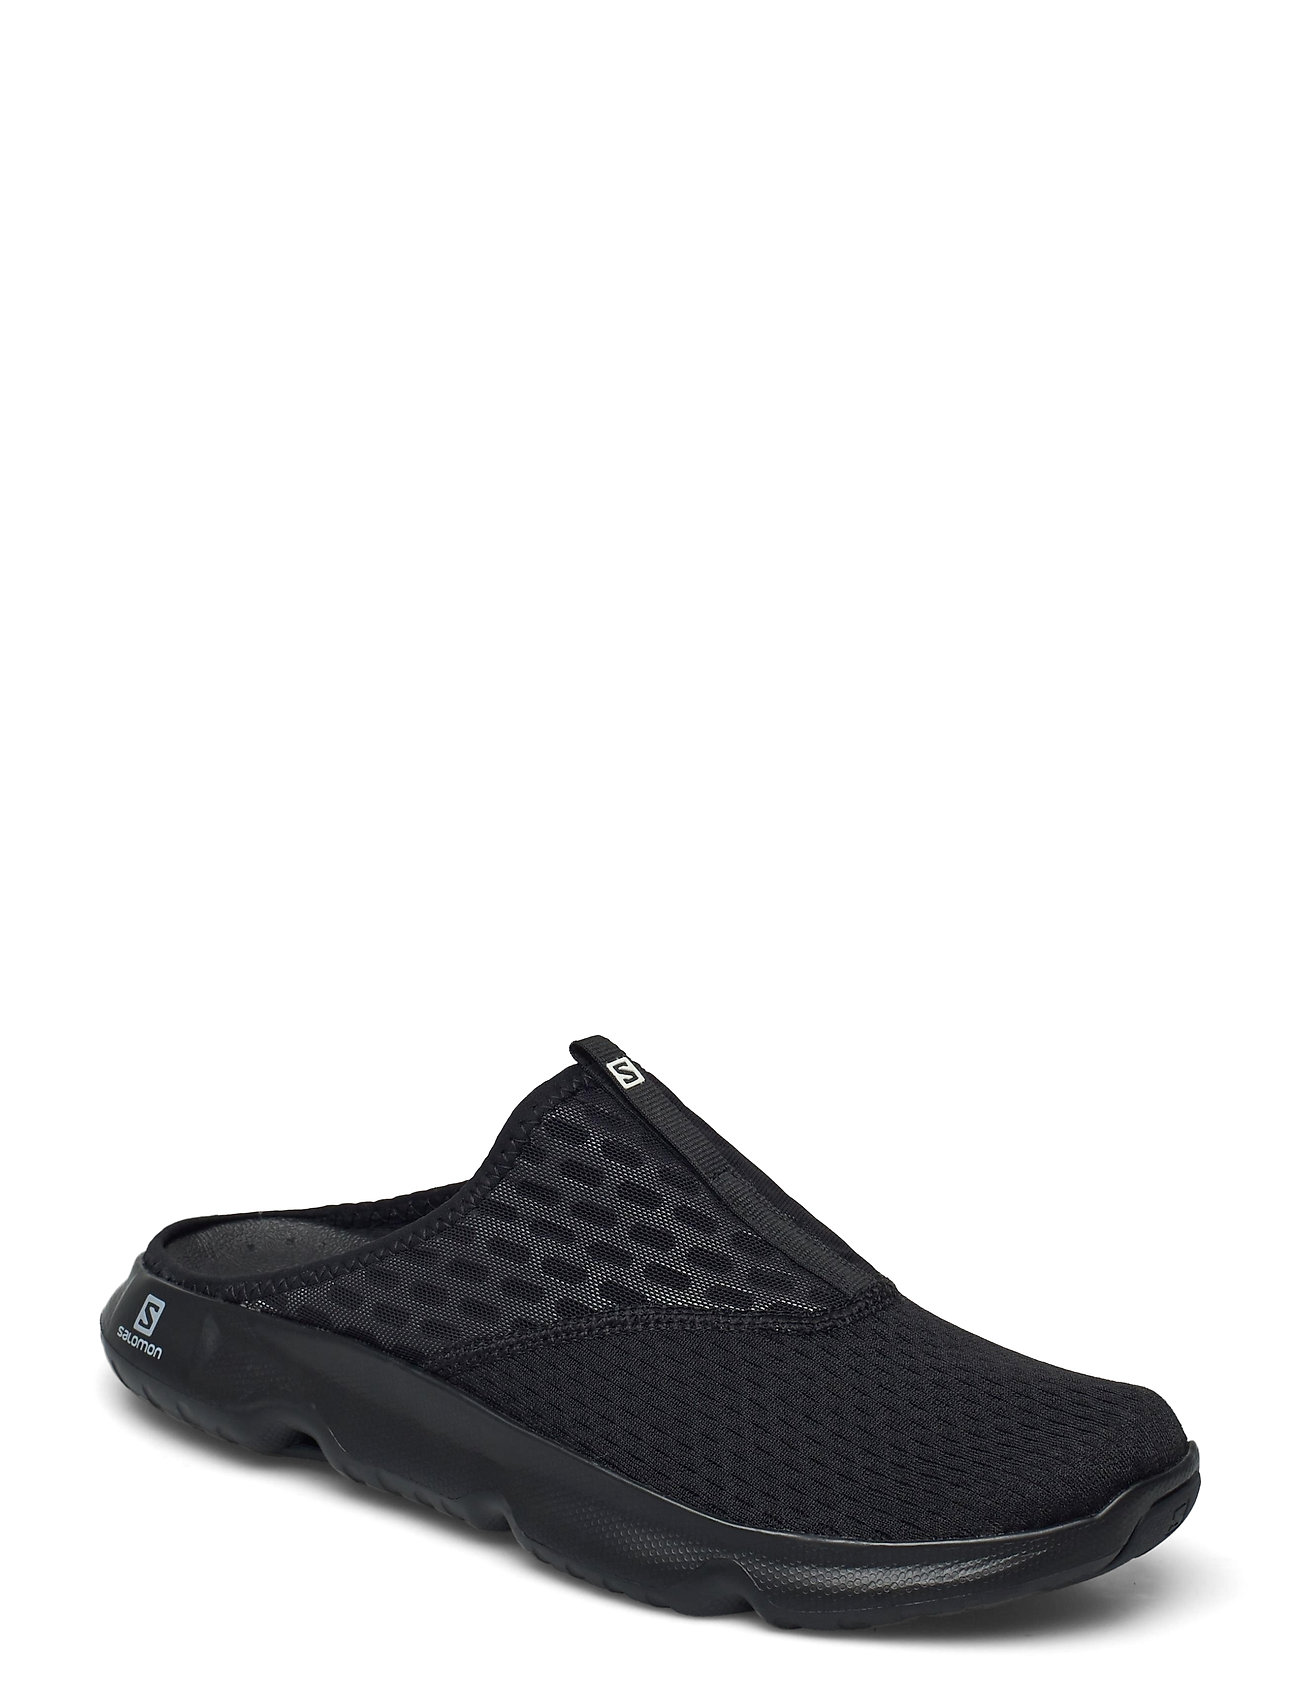 Image of Reelax Slide 5.0 Black/Black/Black Shoes Summer Shoes Sandals Sort Salomon (3514017057)